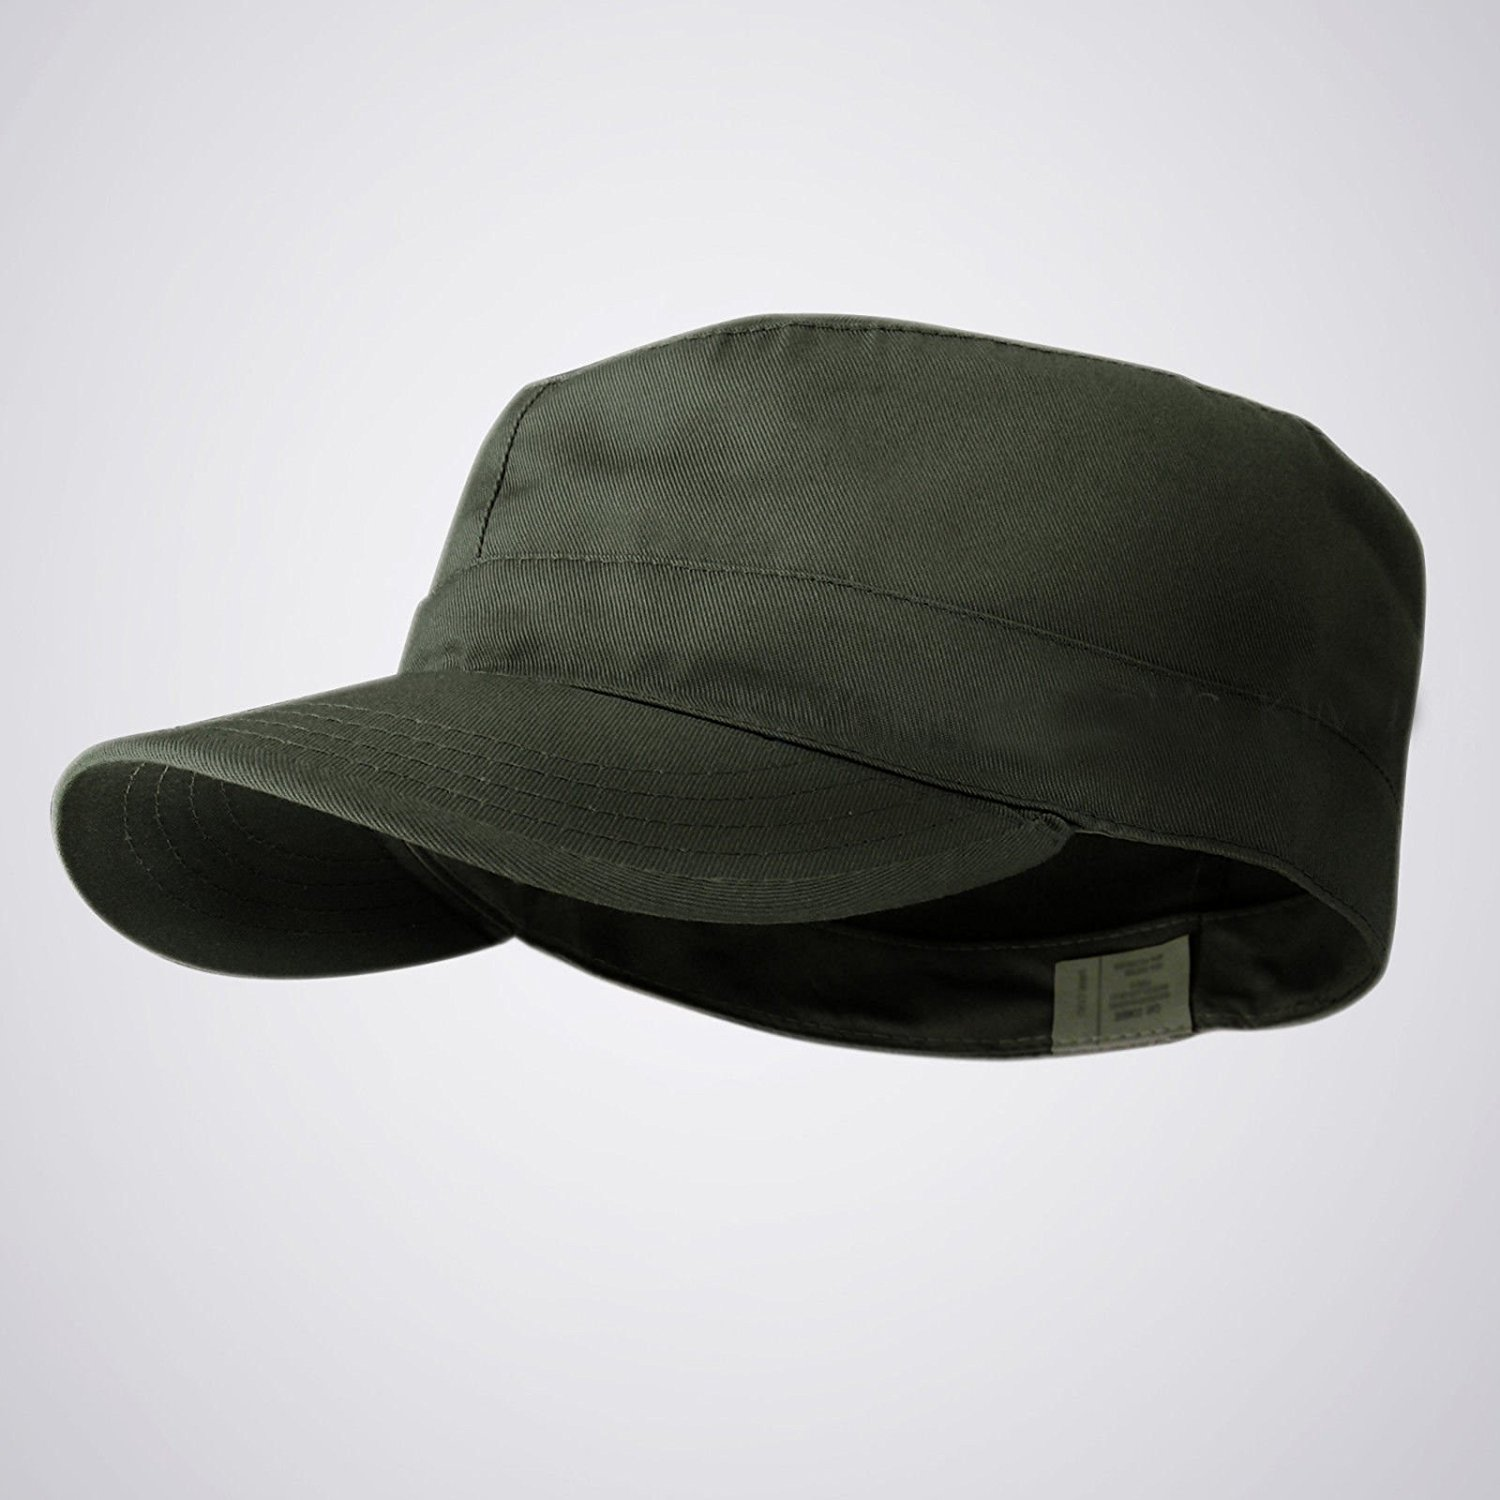 Get Quotations · Olive 54-56cm Distressed BDU Fitted Army Cadet Military  Patrol Castro Cap Hat Combat Hunting 4d4e00adad15